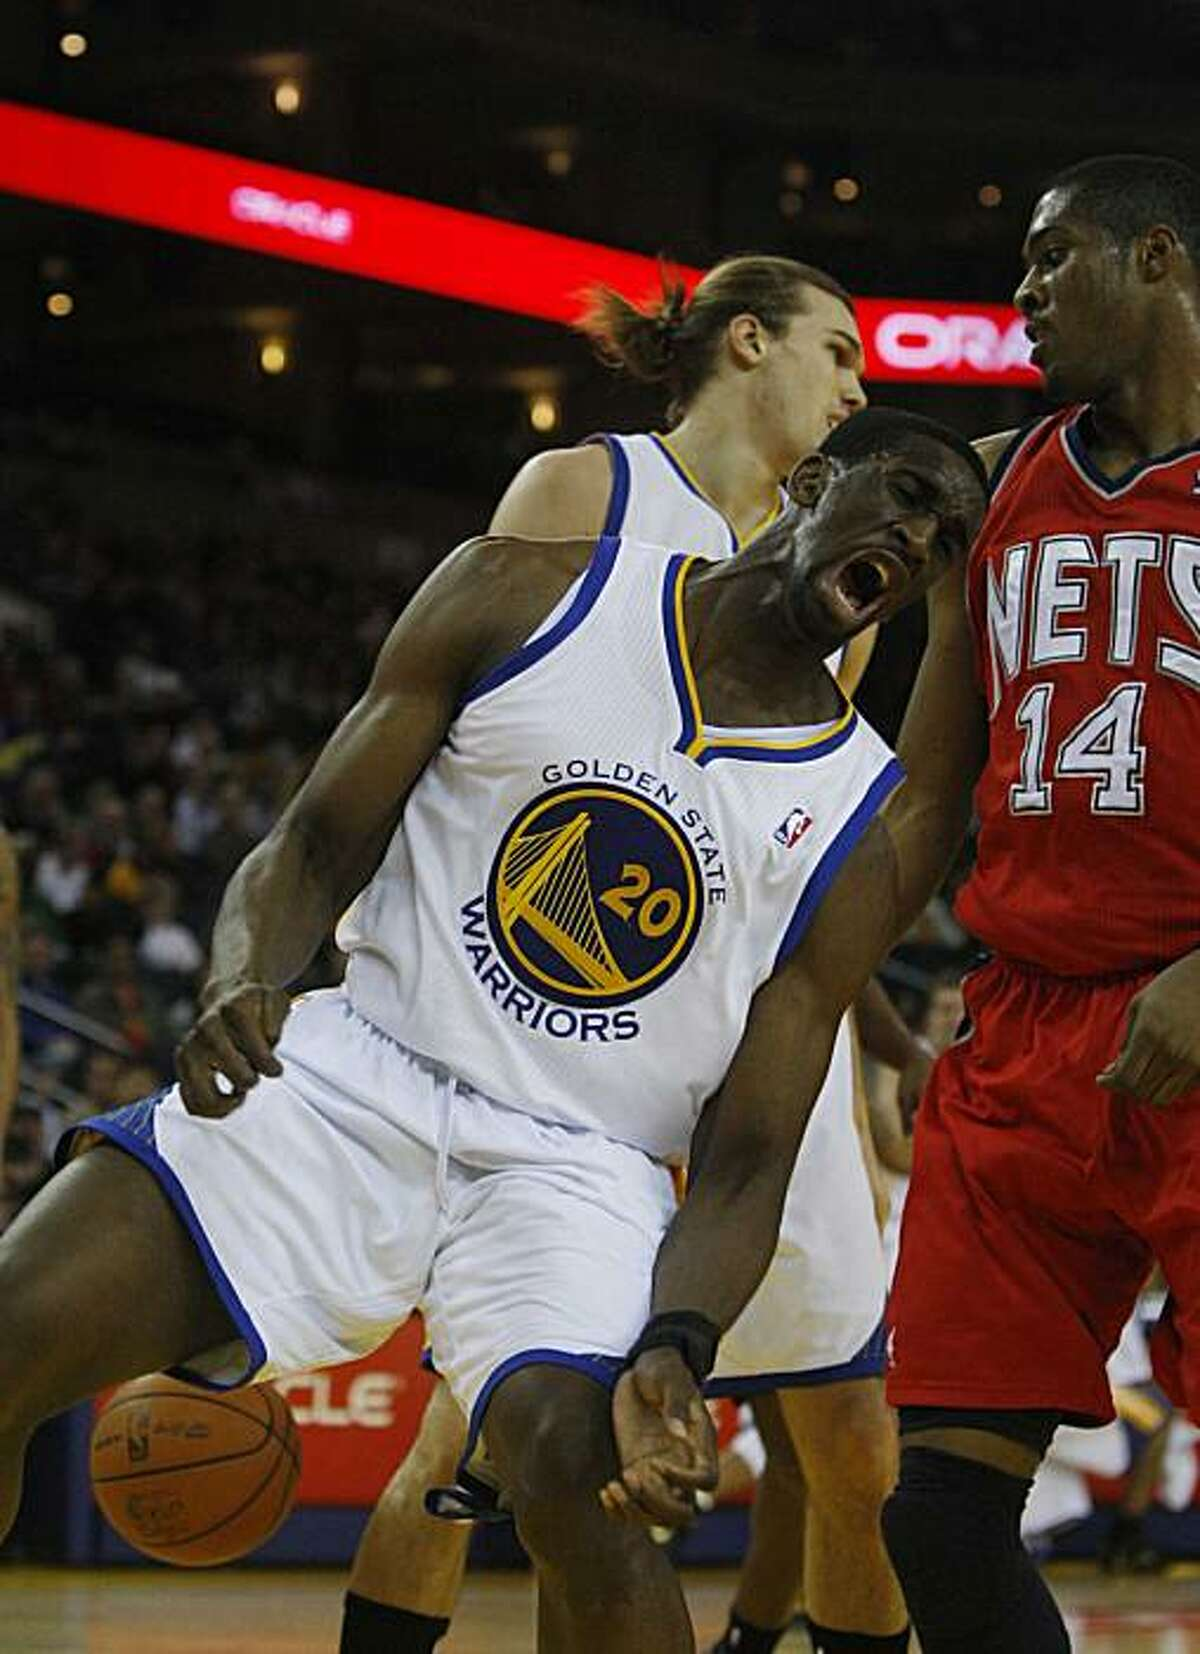 Warriors #20 Ekpe Udoh makes a face after a slam dunk at Oracle Arena during the first half of a home game with Golden State Warriors and the New Jersey Nets on Monday January. 17, 2011 in Oakland, Calif.